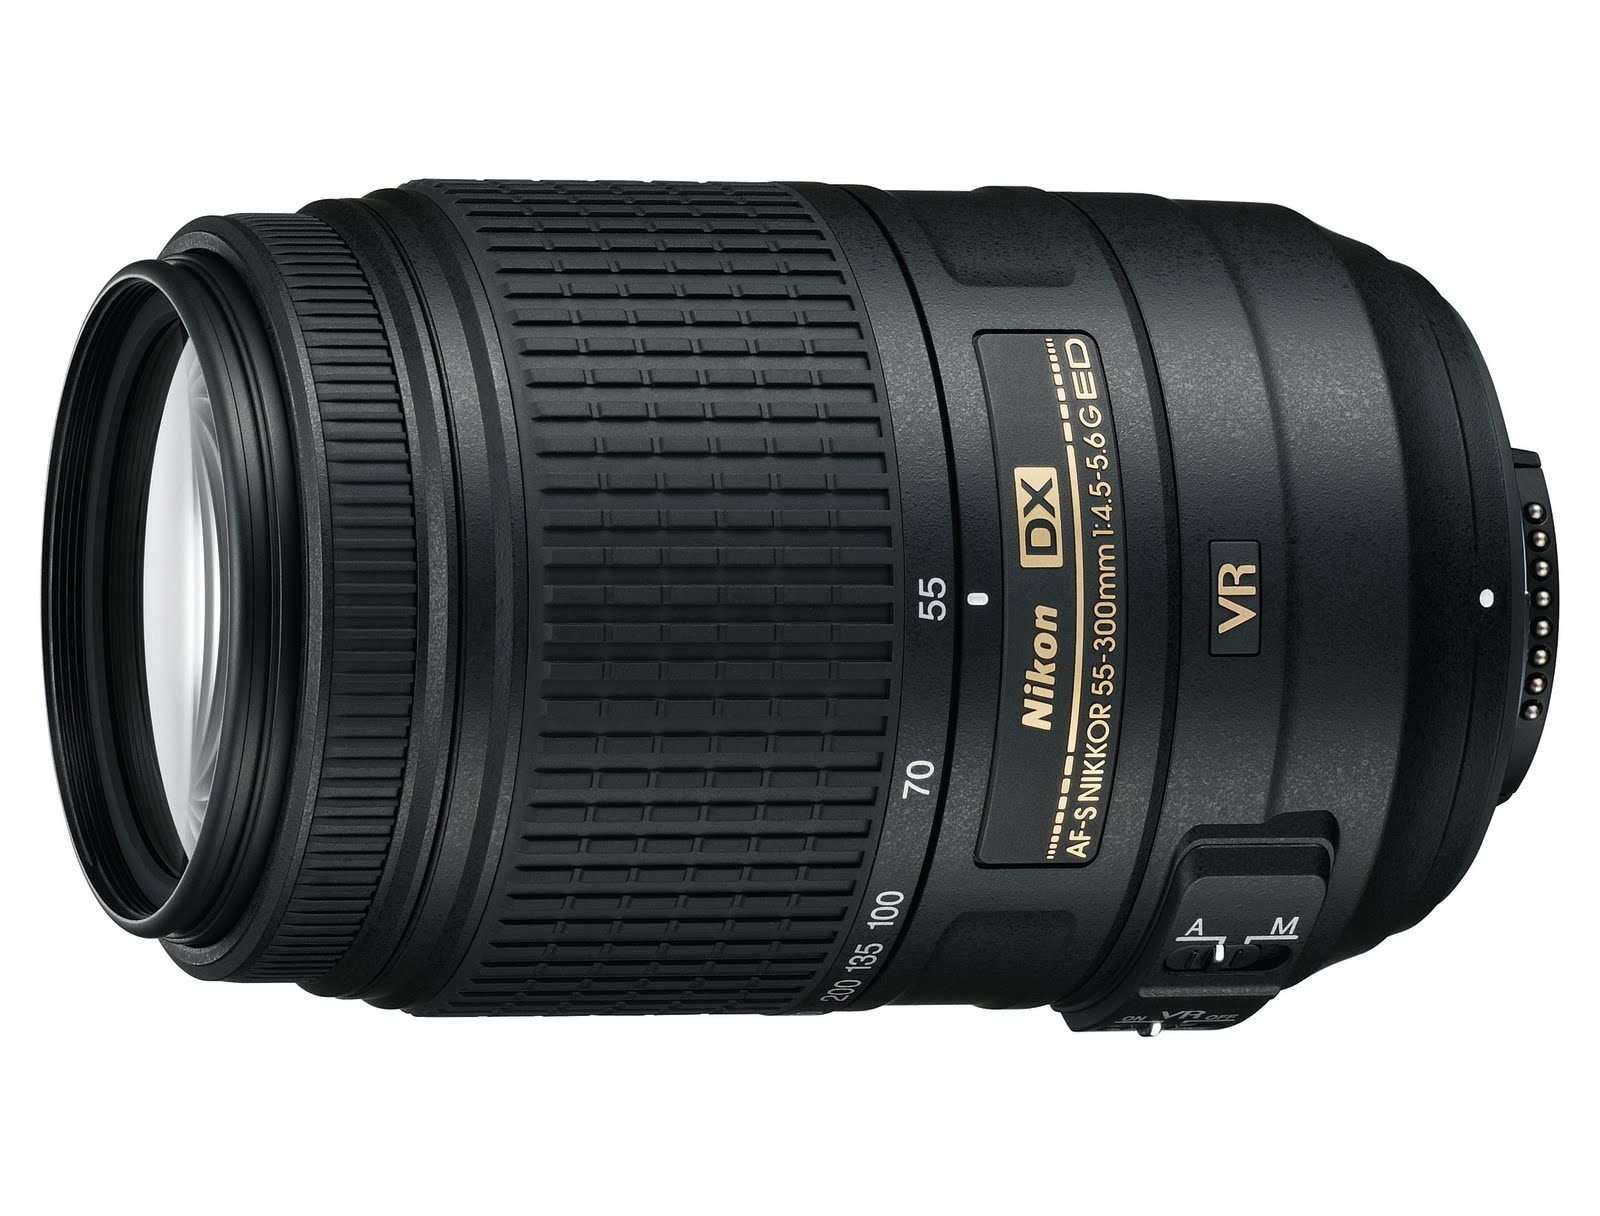 Photo Infos: NIKKOR Legacy Continues Commitment To Optical ...